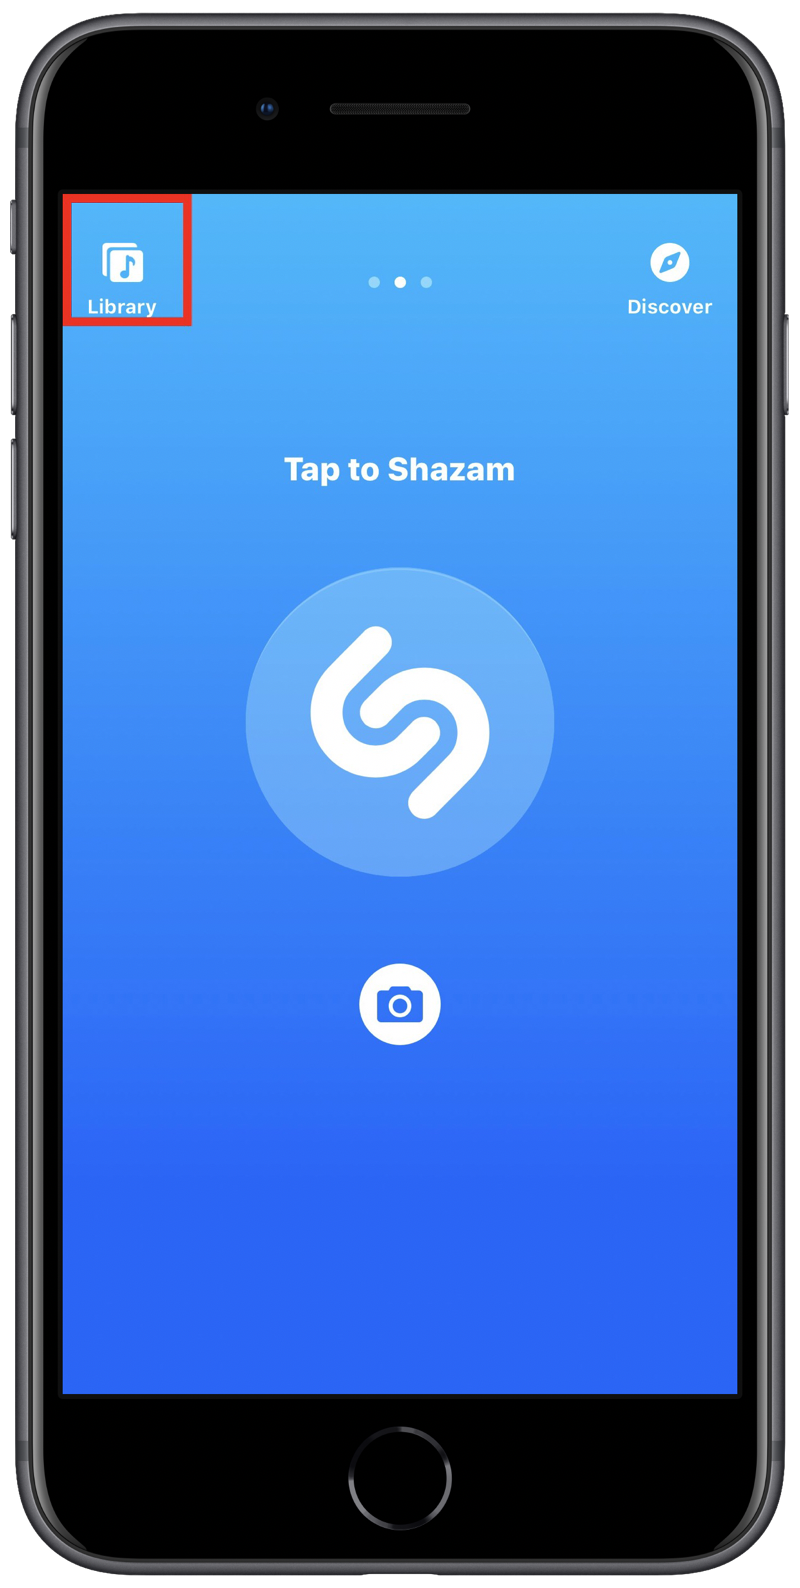 Free Apple Music in Shazam screenshot